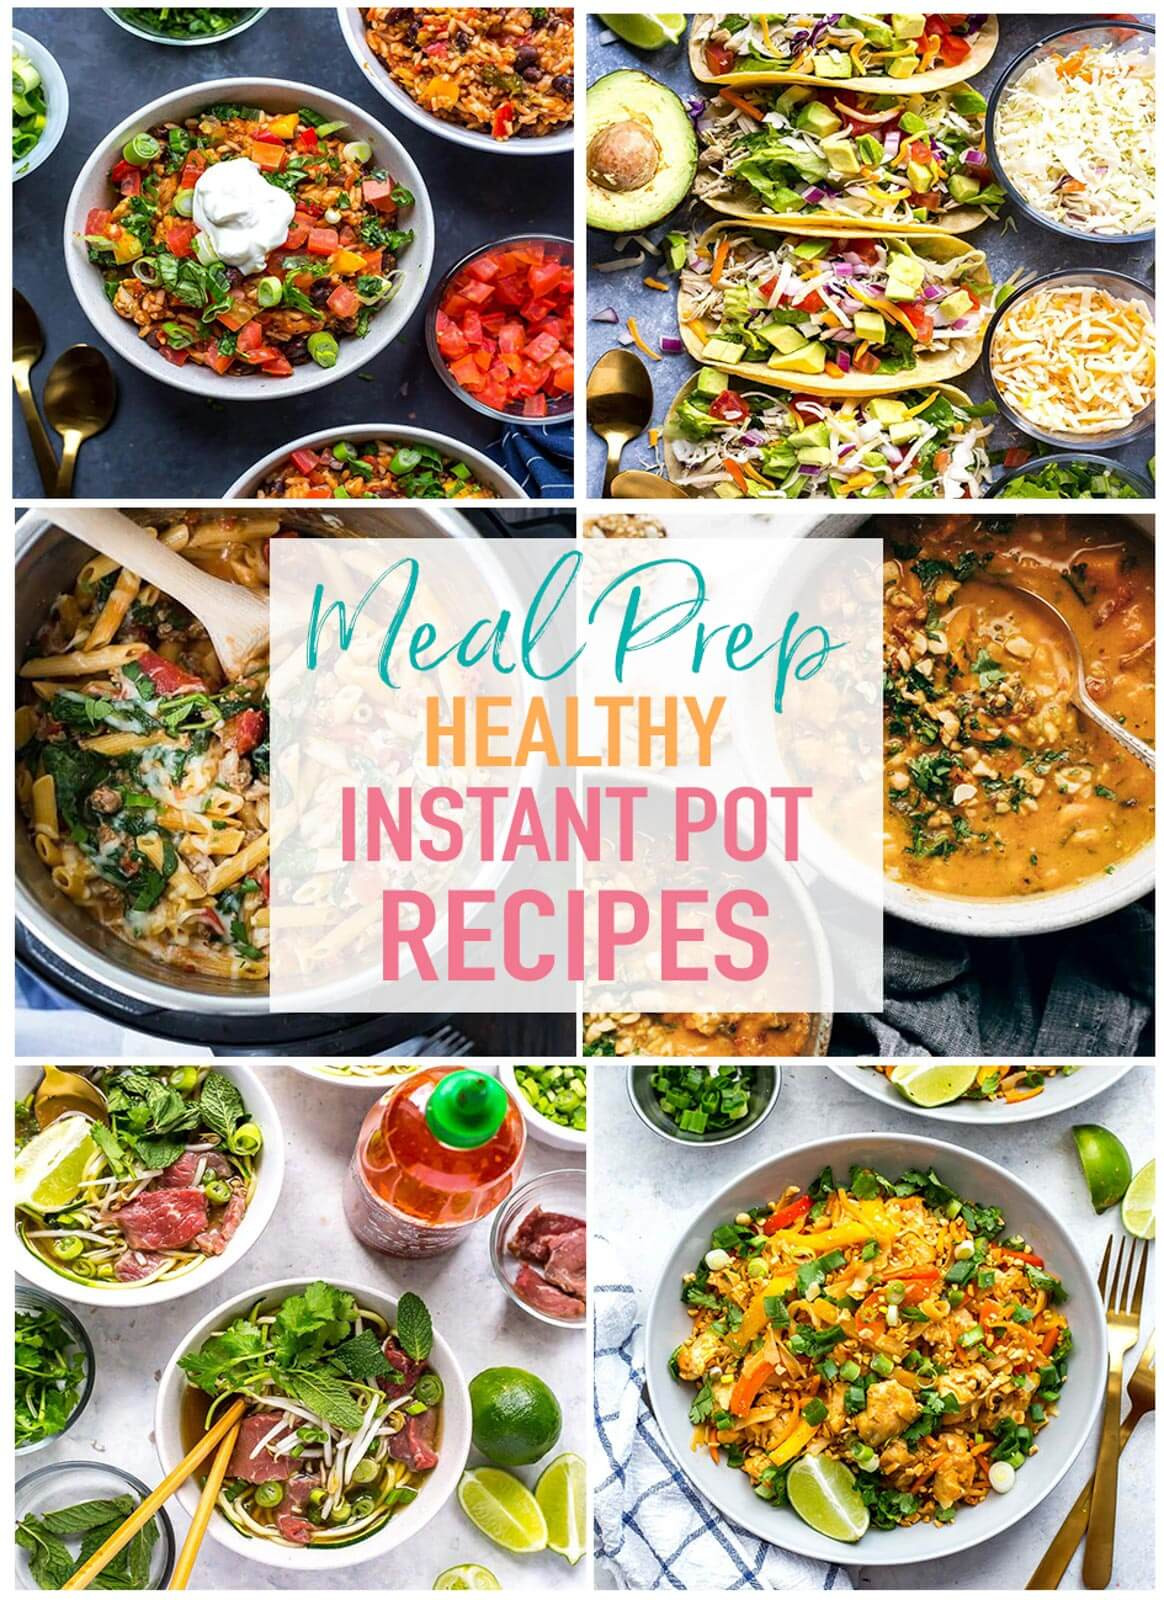 Best Healthy Instant Pot Recipes  17 Healthy Instant Pot Recipes for Meal Prep The Girl on